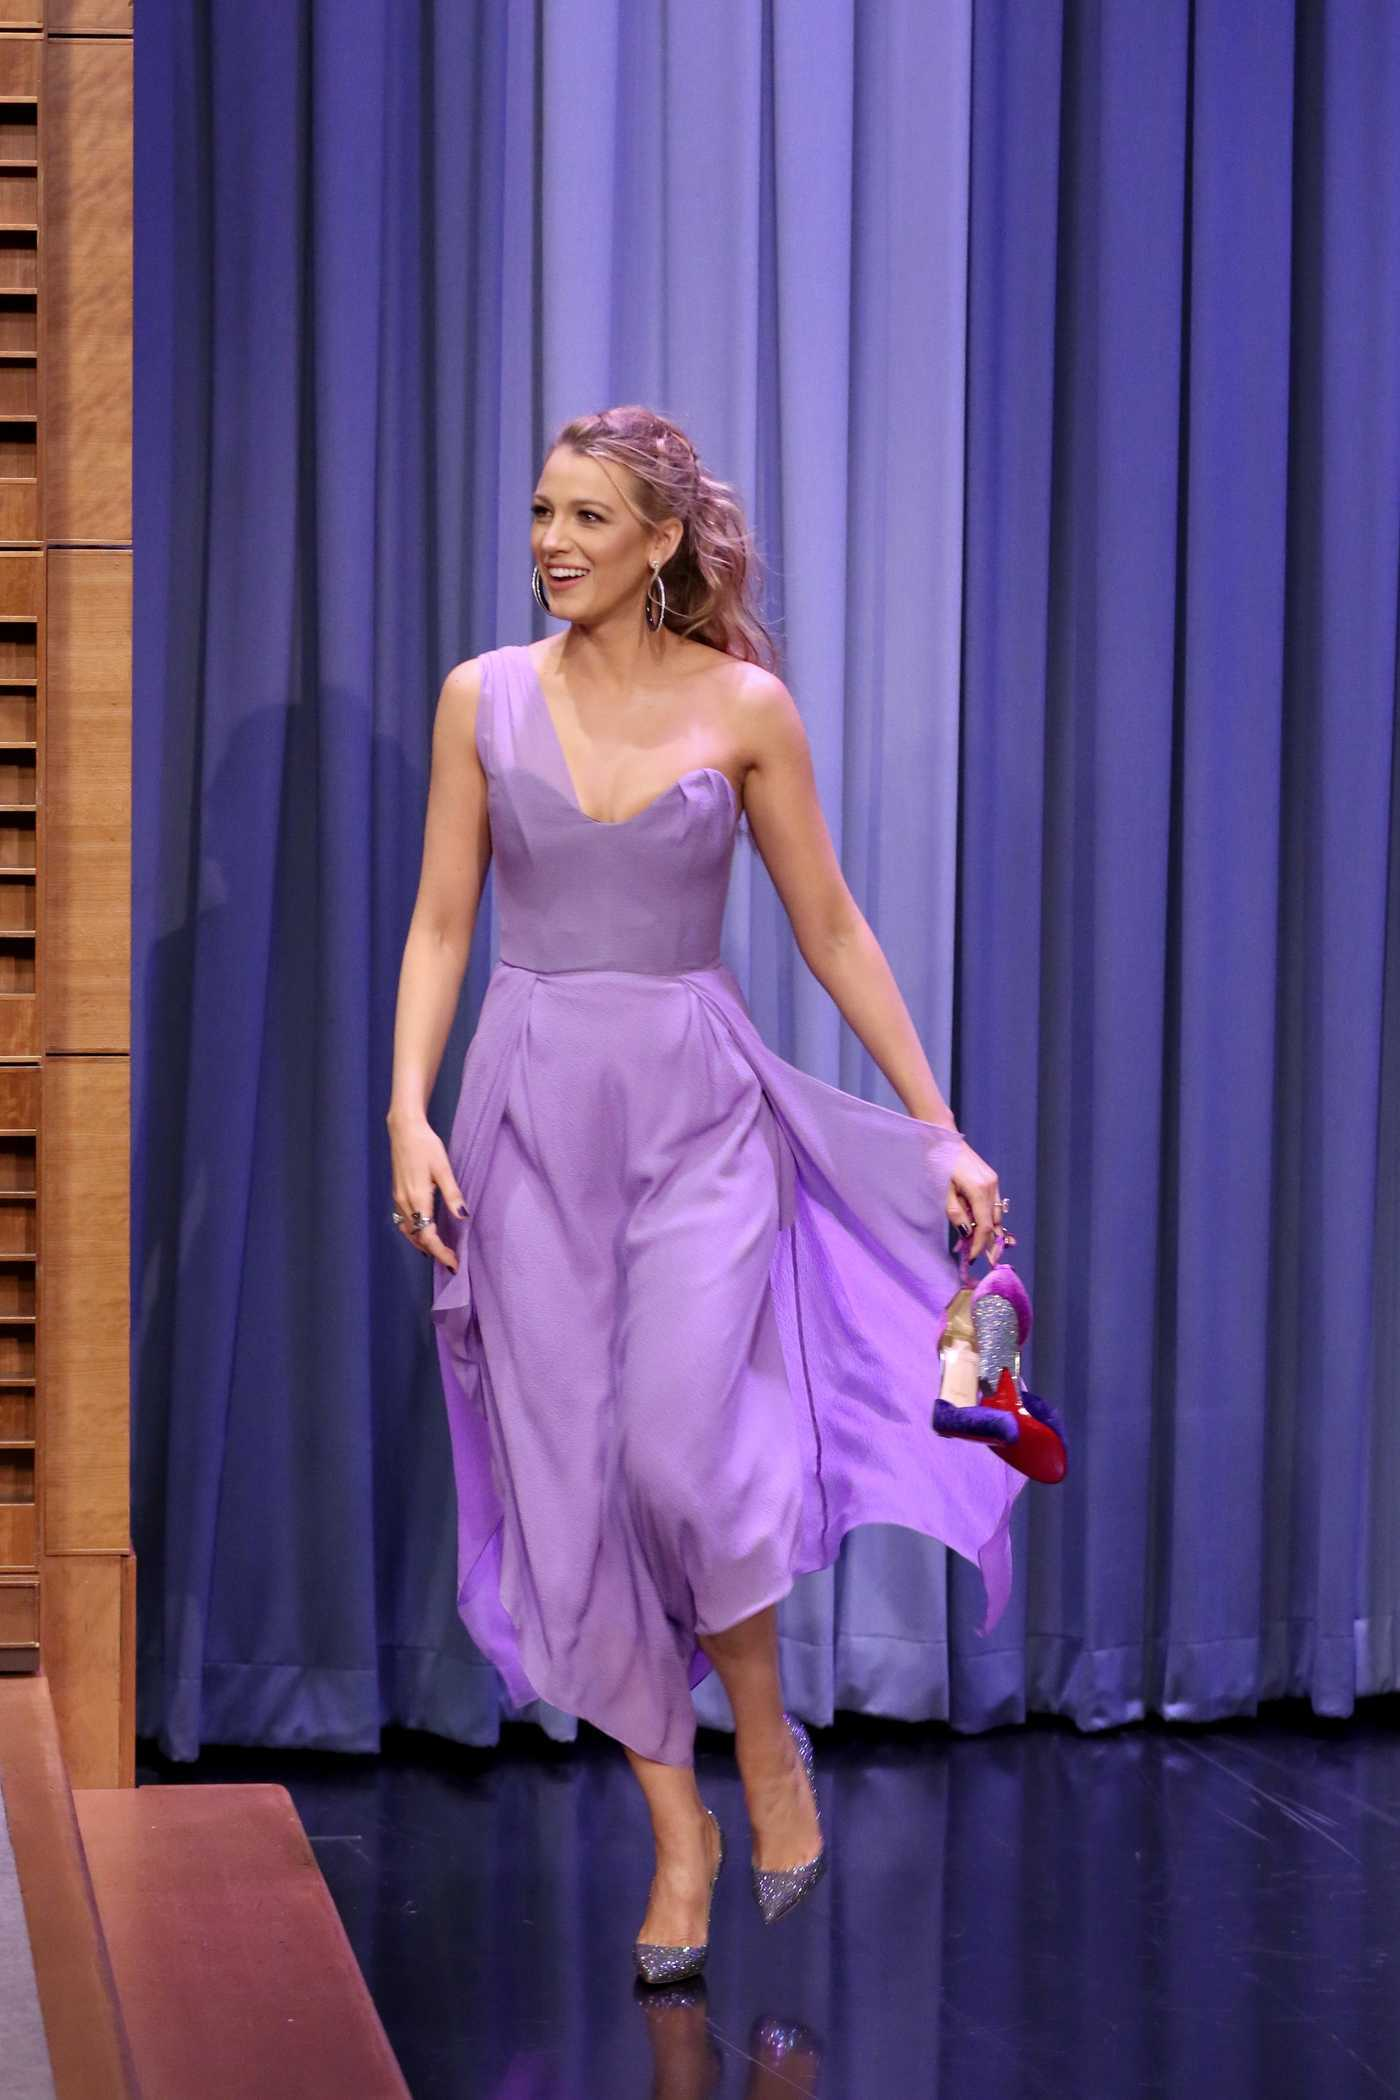 Blake Lively on The Tonight Show Starring Jimmy Fallon in NYC10/13/2017